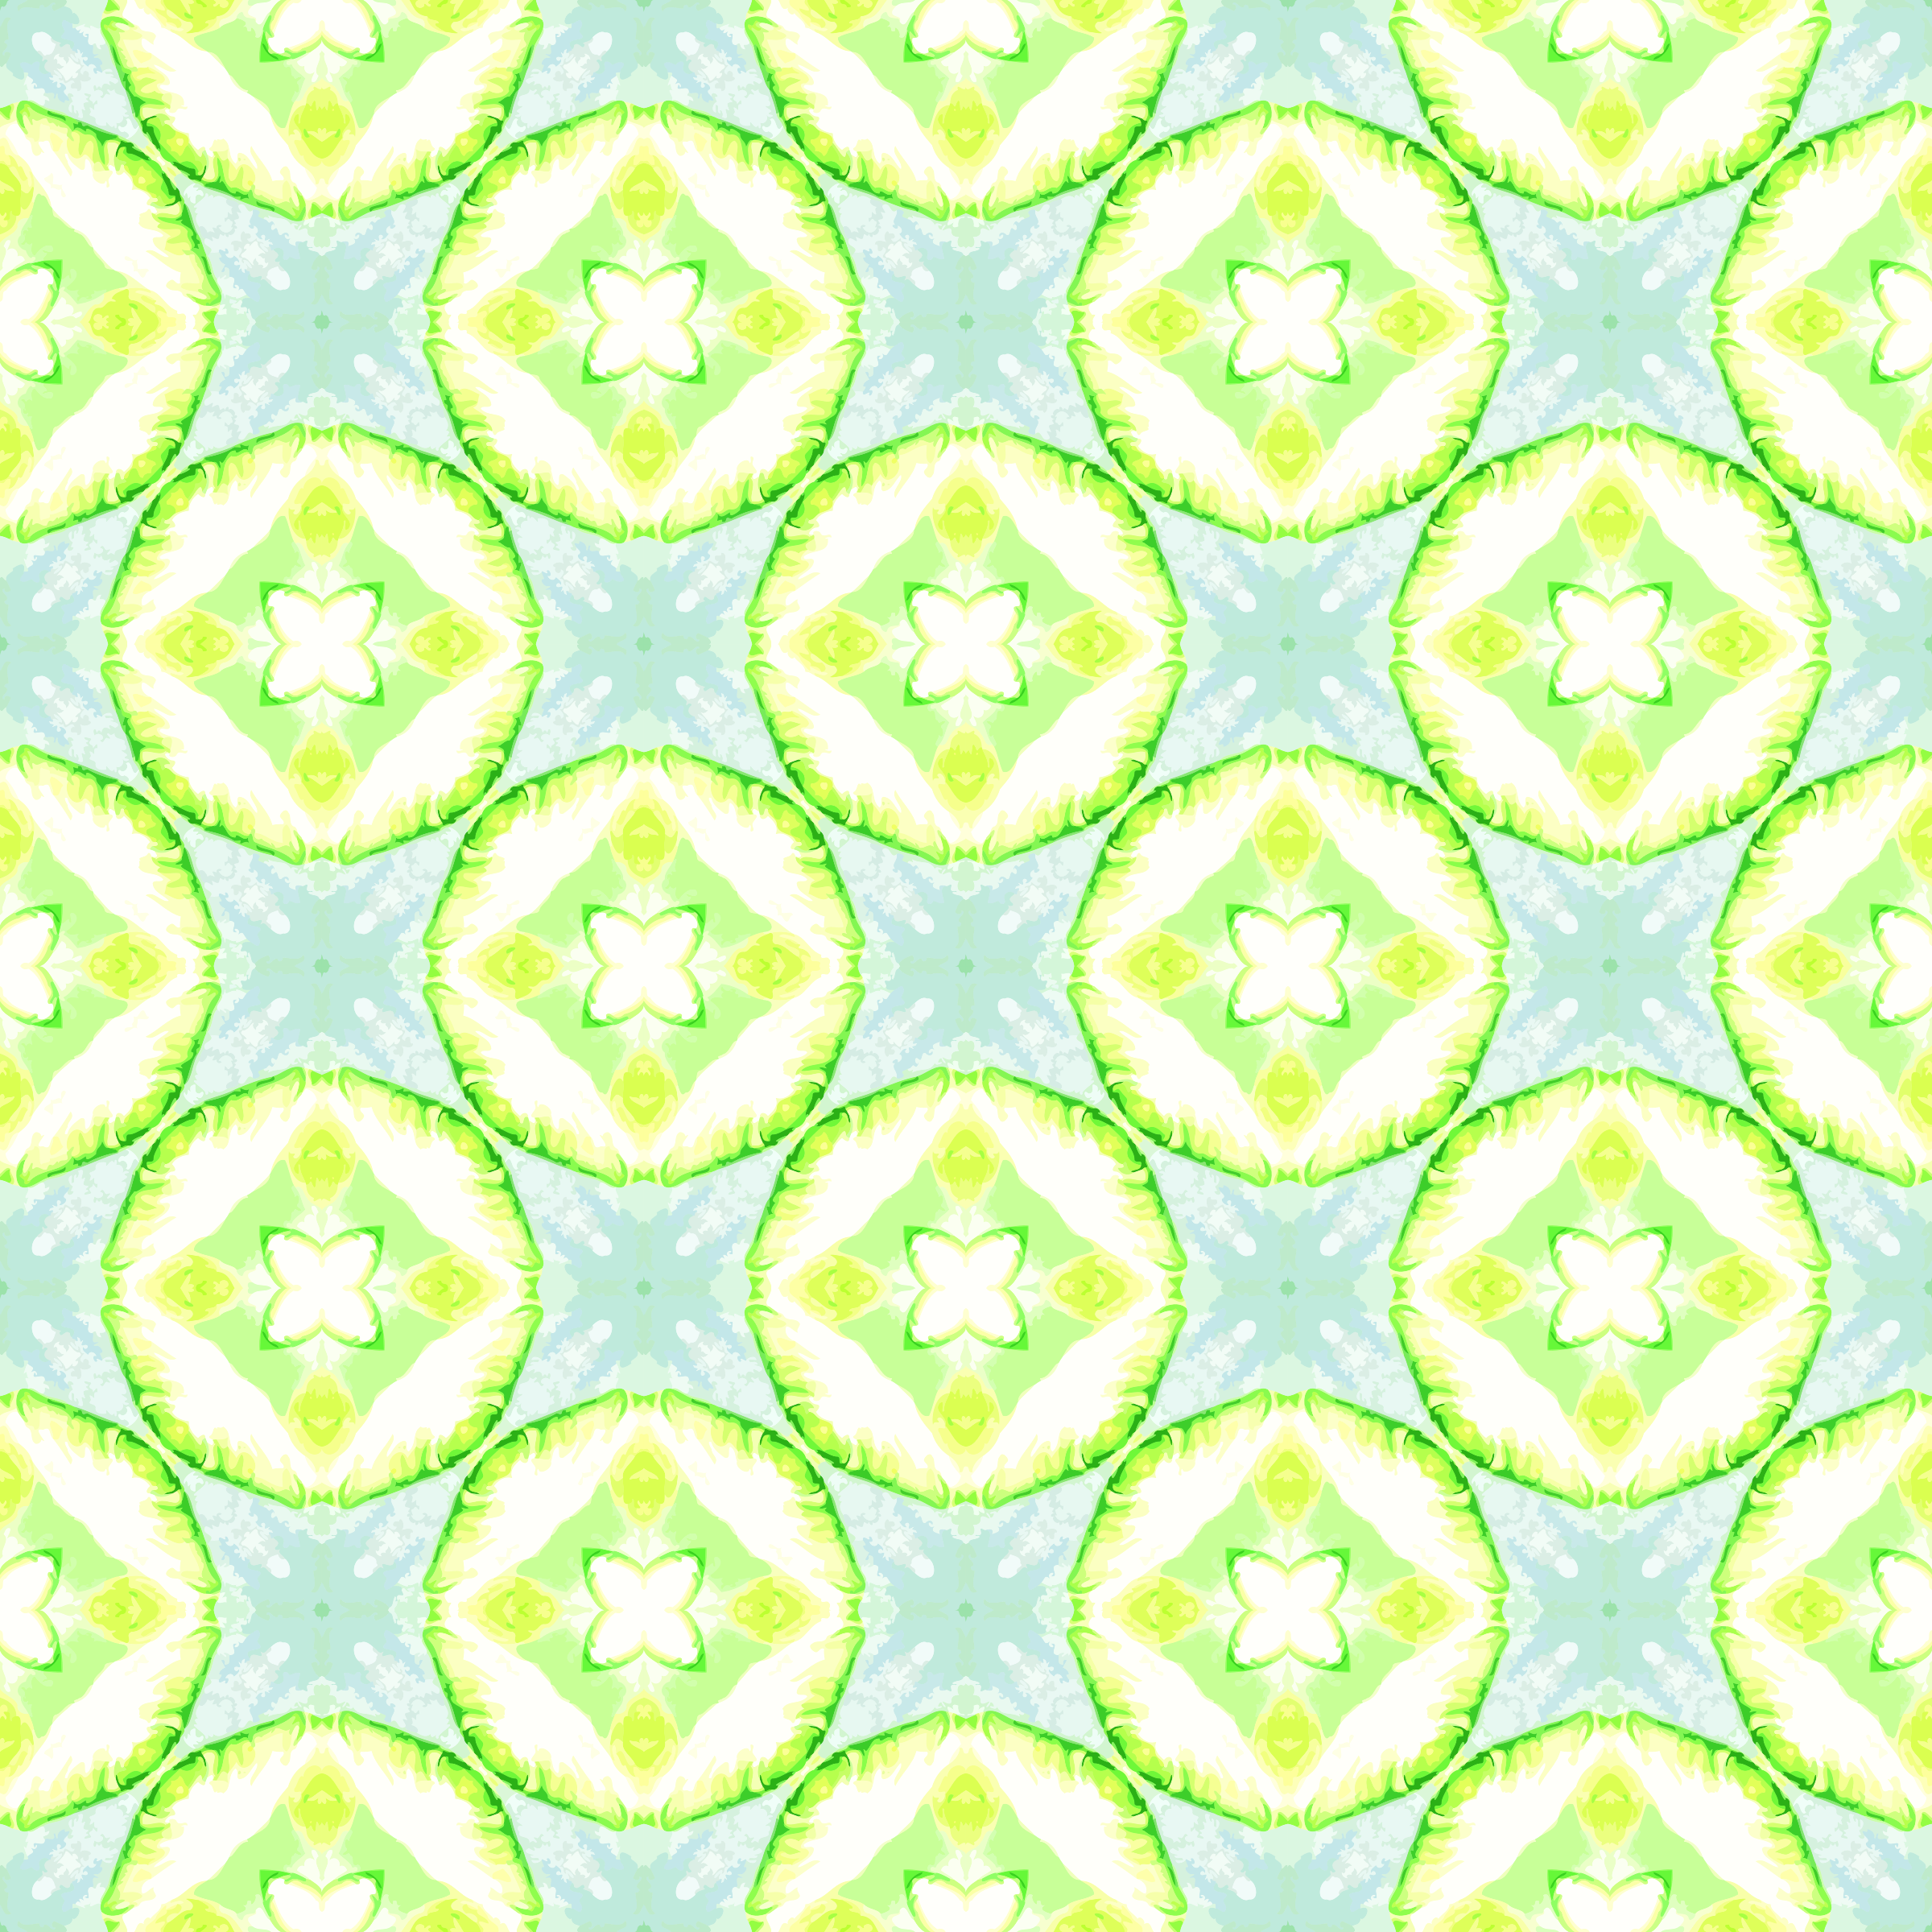 Background pattern 142 (colour 4) by Firkin